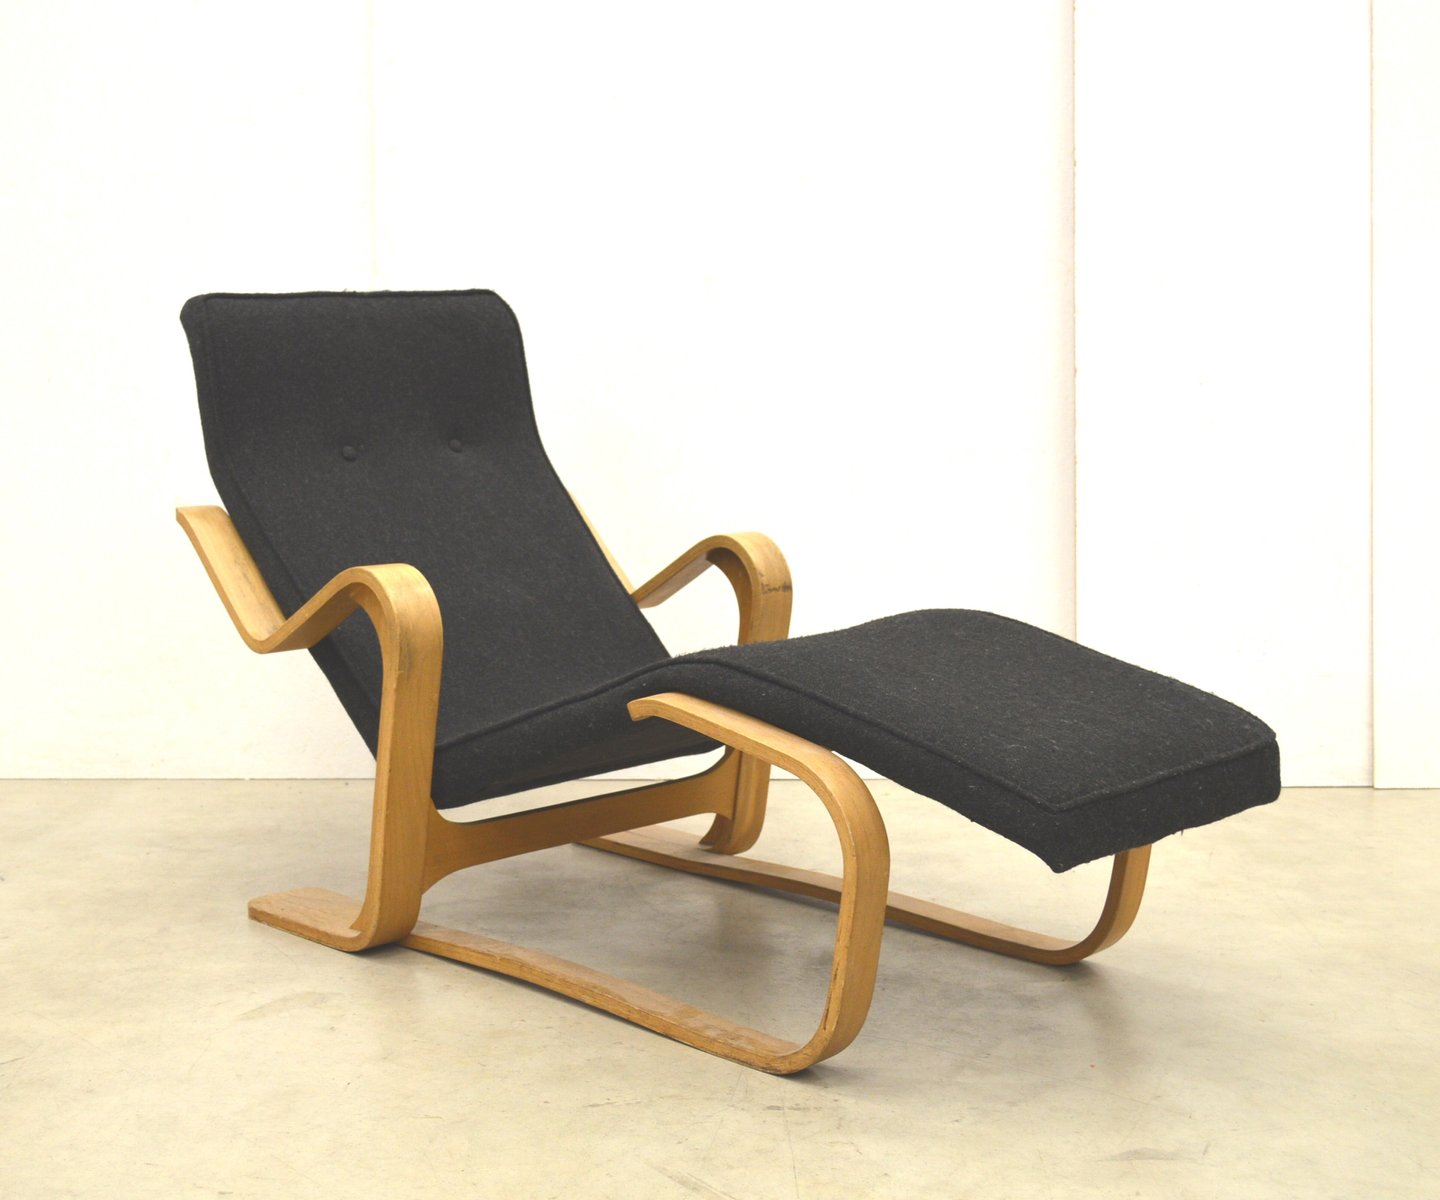 birch chaise longue by marcel breuer for isokon 1950s for sale at pamono. Black Bedroom Furniture Sets. Home Design Ideas